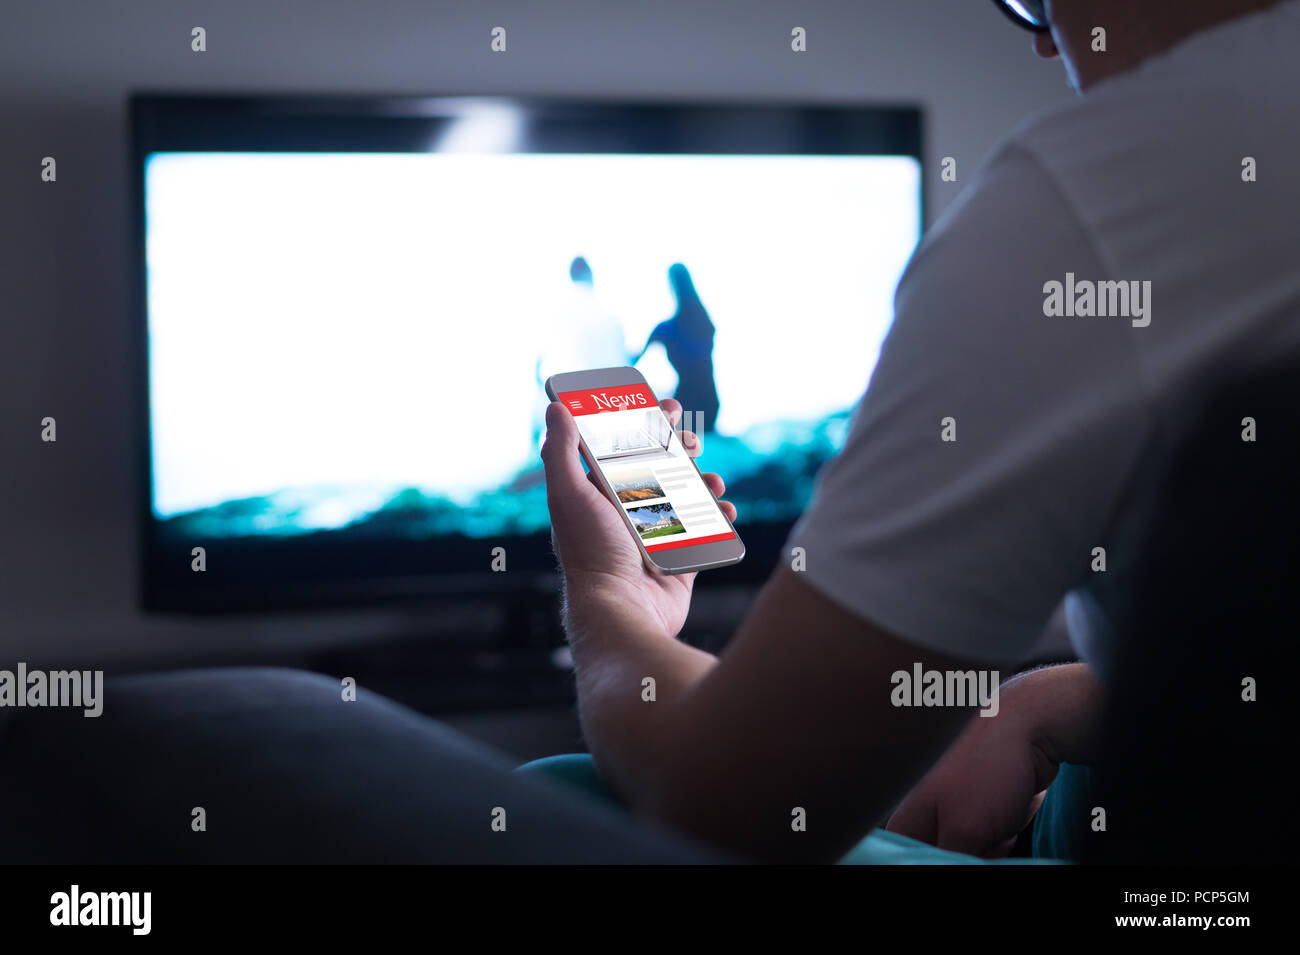 cc52321da1c5ba Man reading online news on smartphone at home. Mobile phone news website,  application or portal on cellphone screen. Holding smart device in hand.